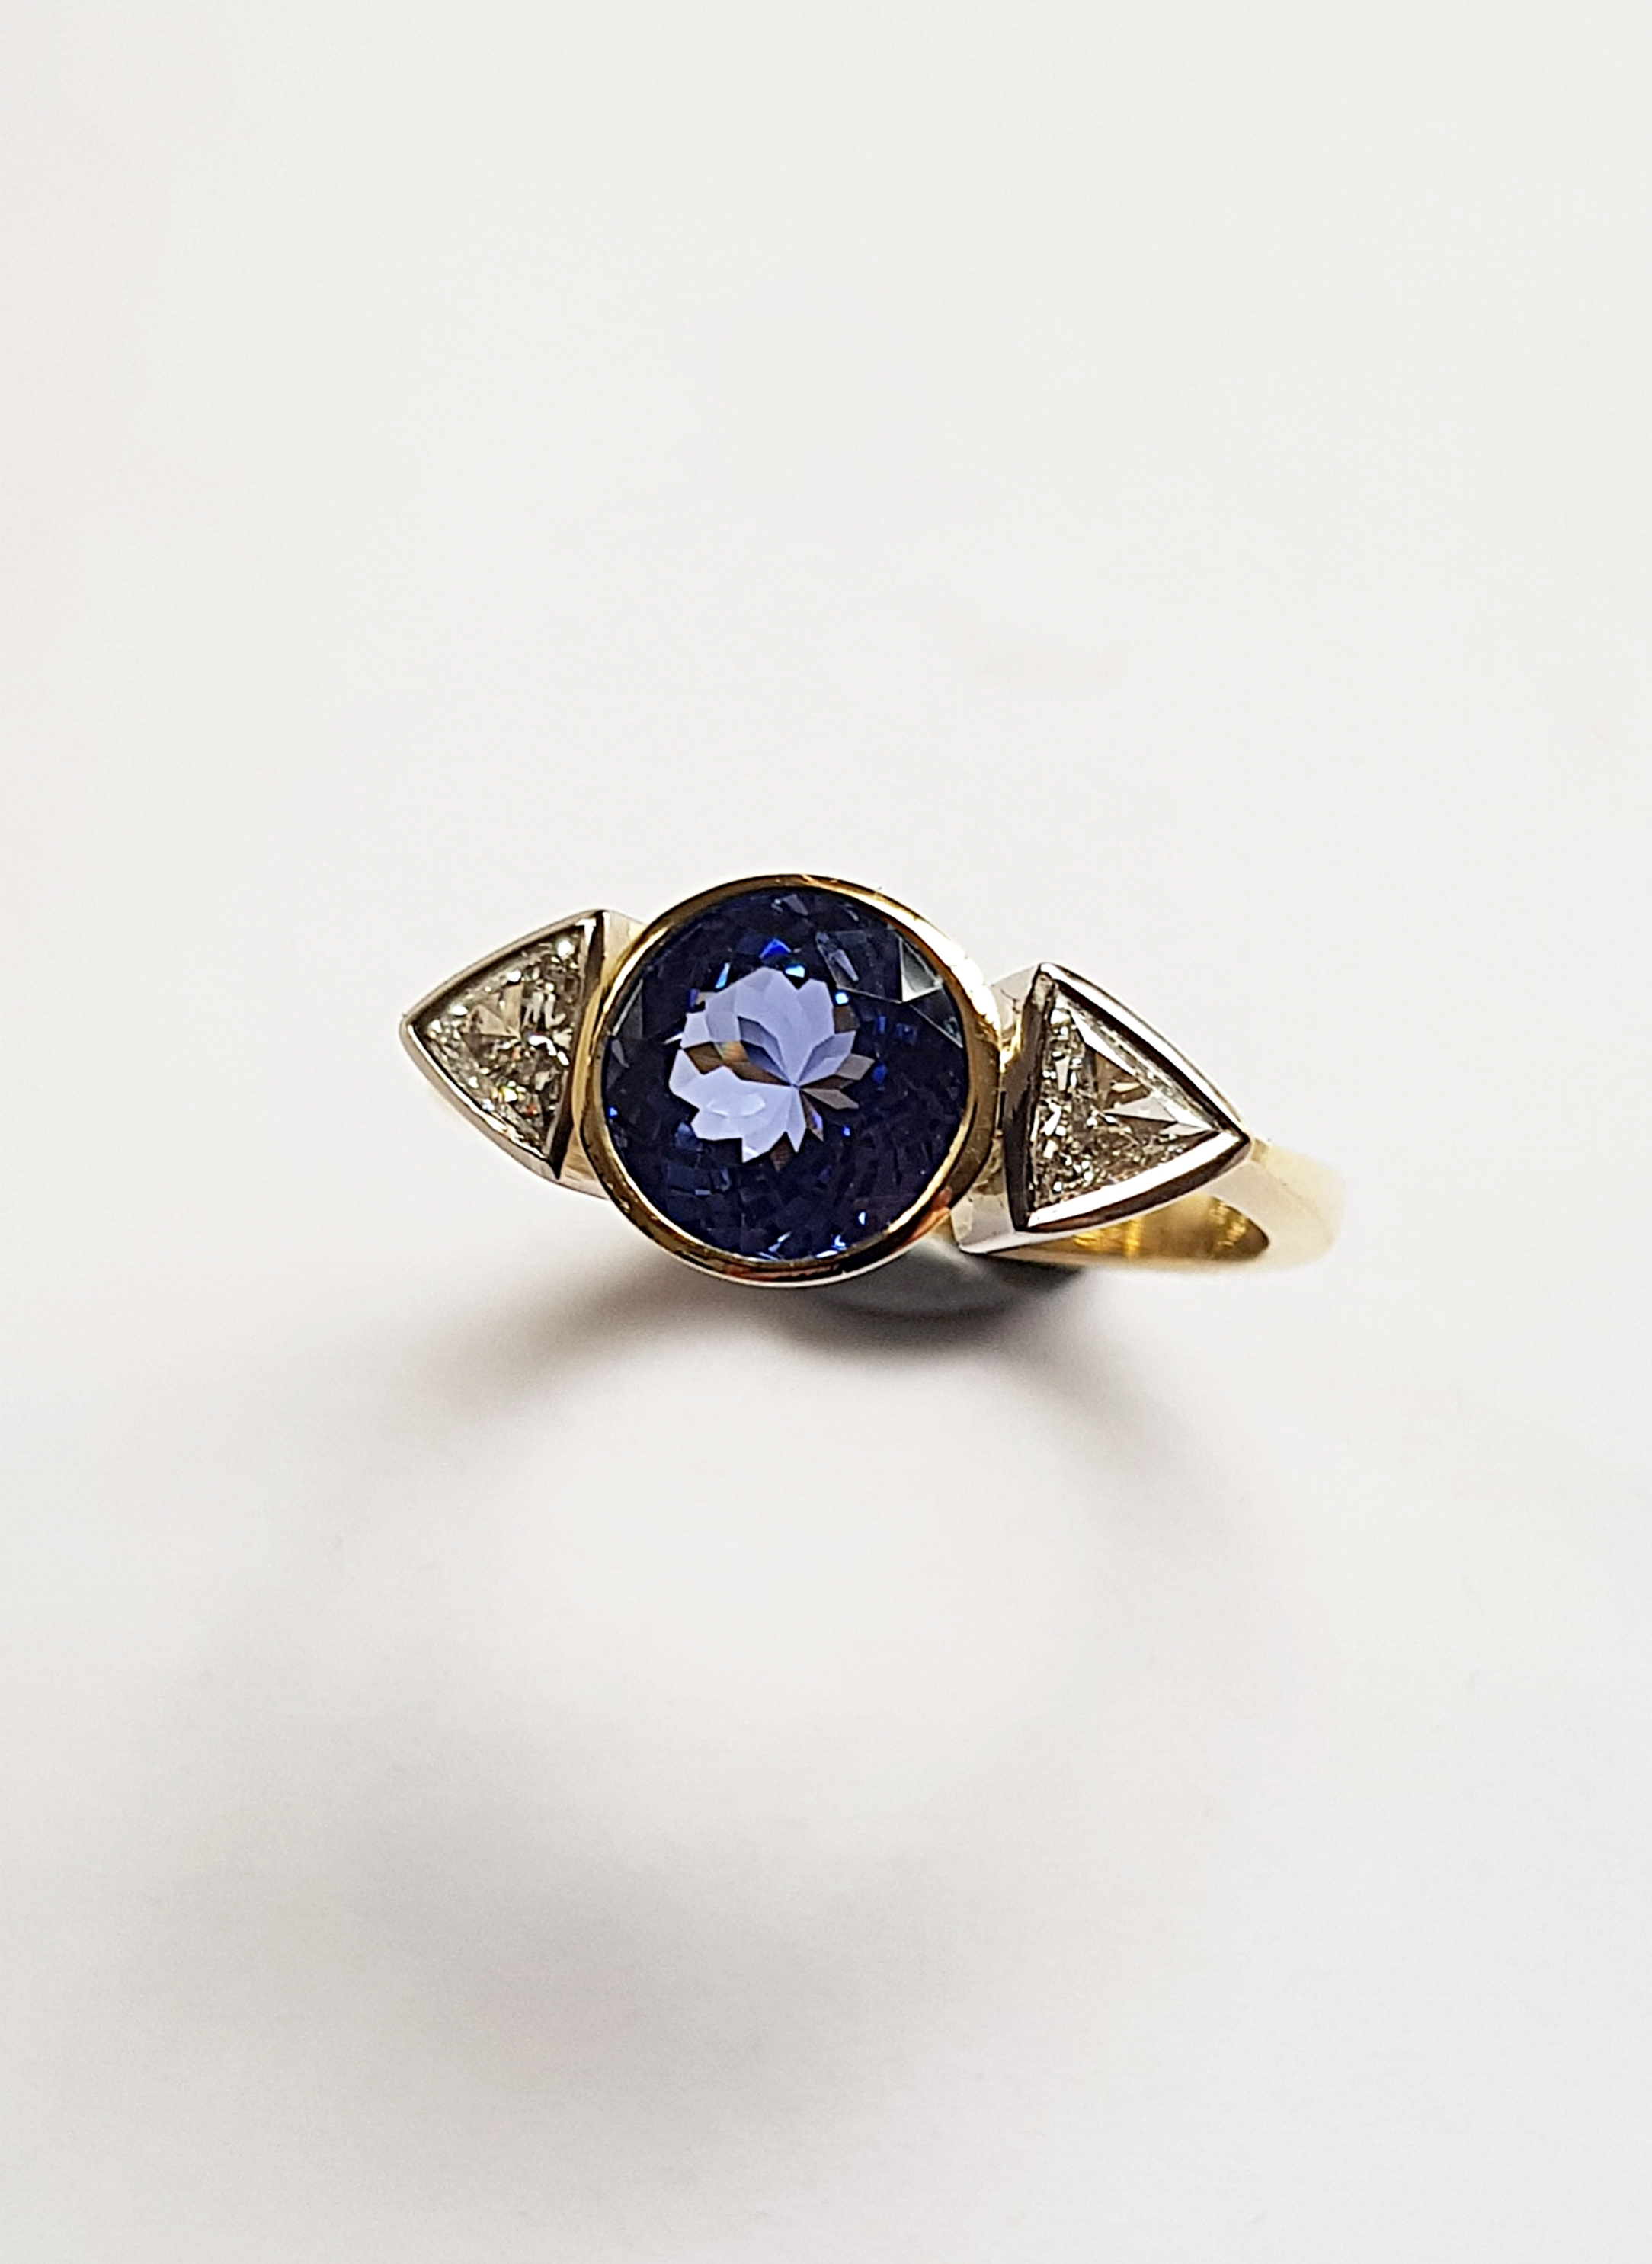 Precision cut Top quality Sapphire flanked by two trilliant cut Diamonds classically mounted in 18ct gold all hand made out of fresh metal ie no cast components by QVJ.